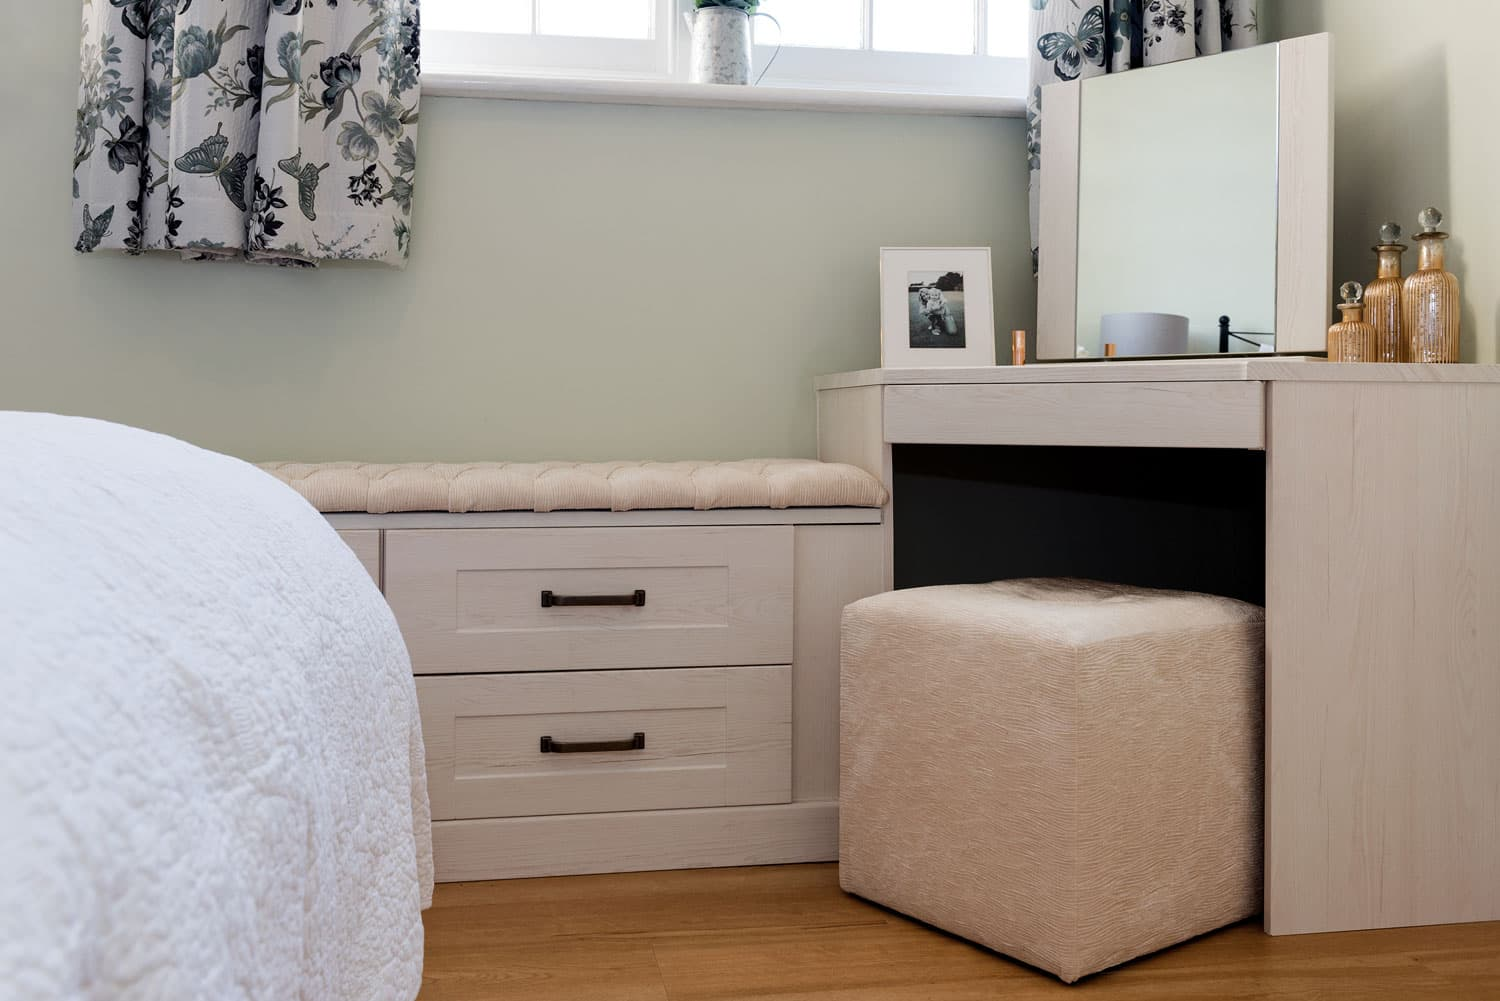 Fitted Dressing Tables Modern Built In Dressing Tables With Storage Uk Hammonds